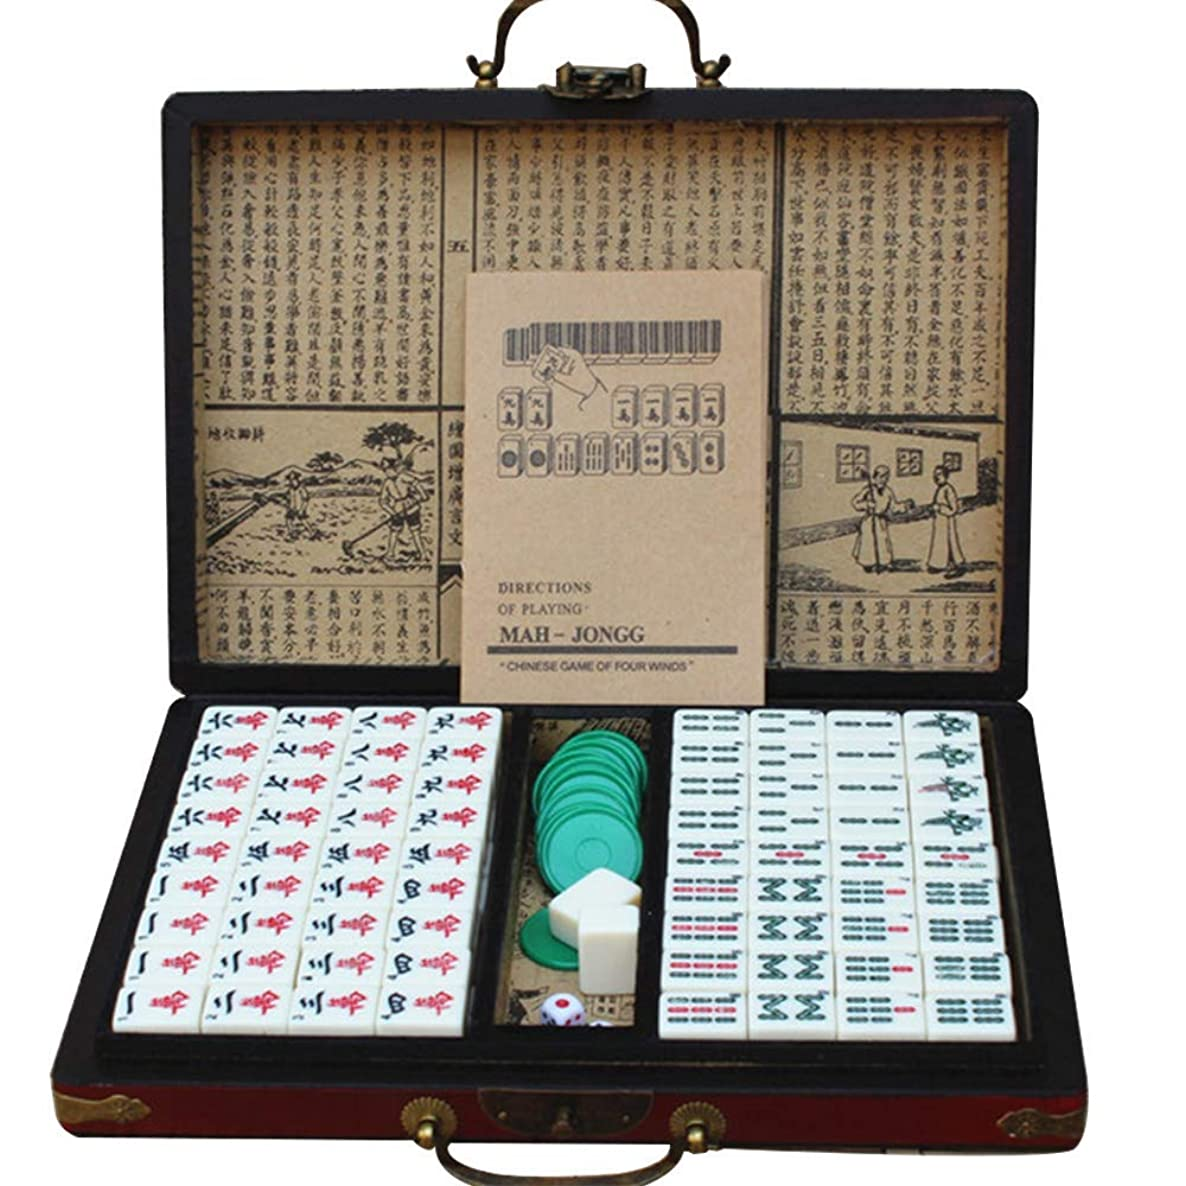 XIAOD Mahjong, Chinese Traditional Luxury Mahjong/Mahjong Club Set Portable 144pcs Tile Game Set Board Game Party Home Retro Style Leather Box